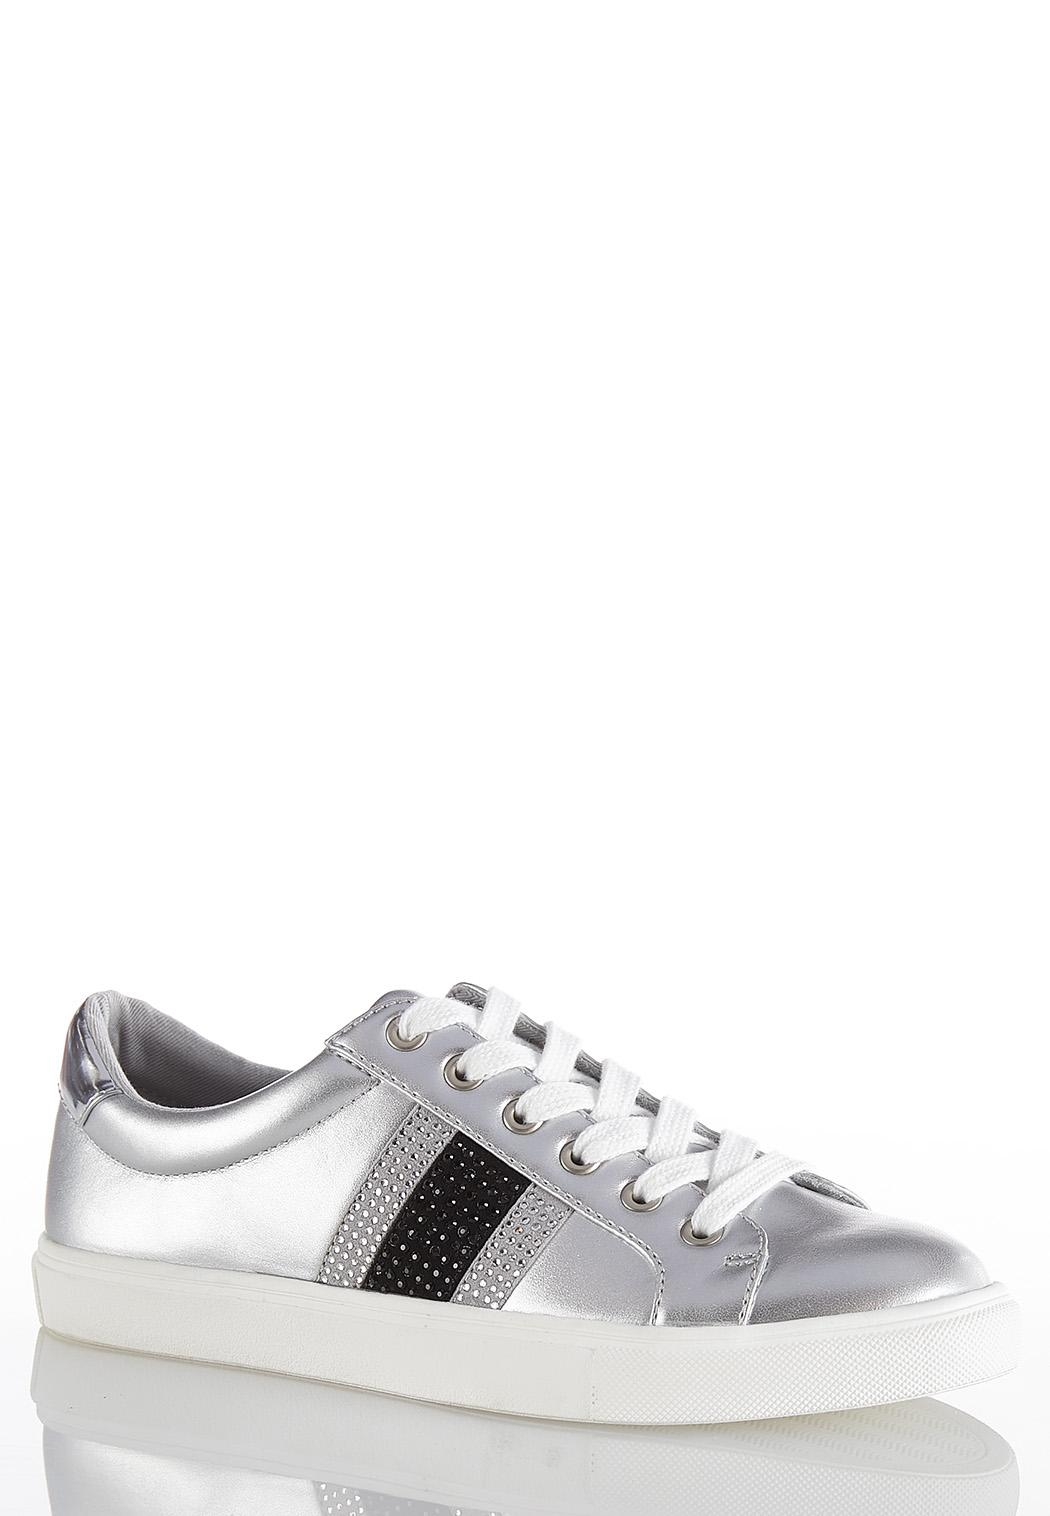 Embellished Silver Sneakers